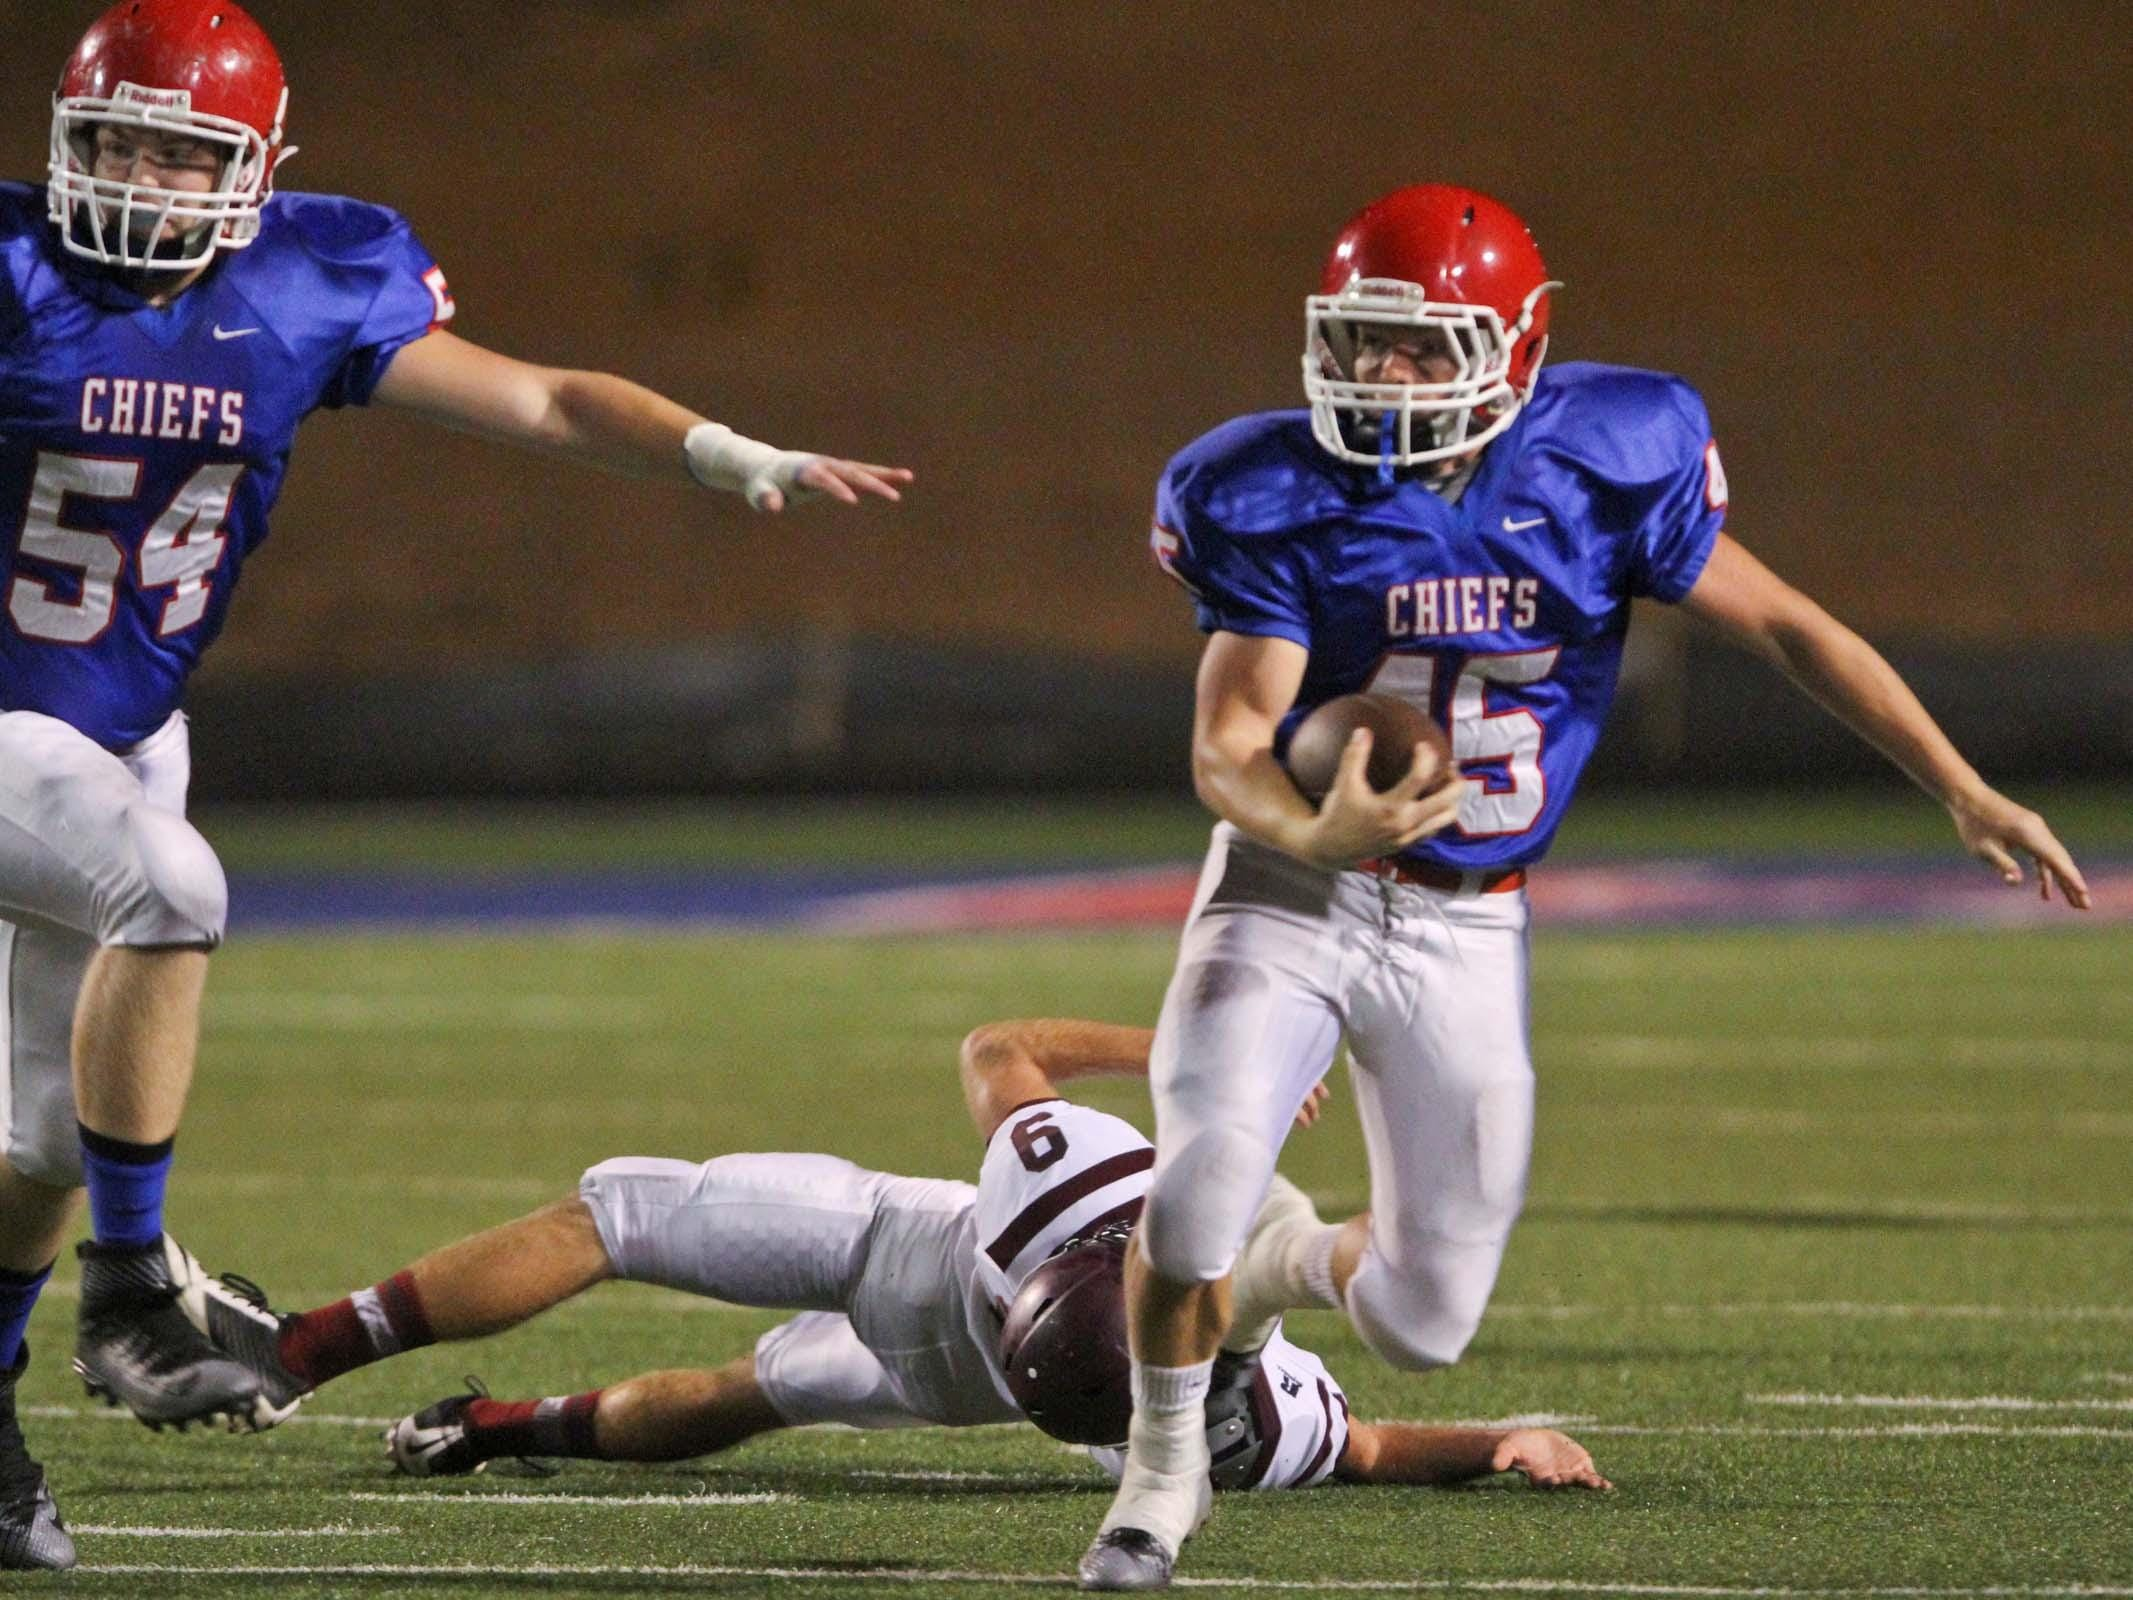 Andrew Lockhart (45) runs over a Grant Cougar and runs for a touchdown during the second quarter of the game.